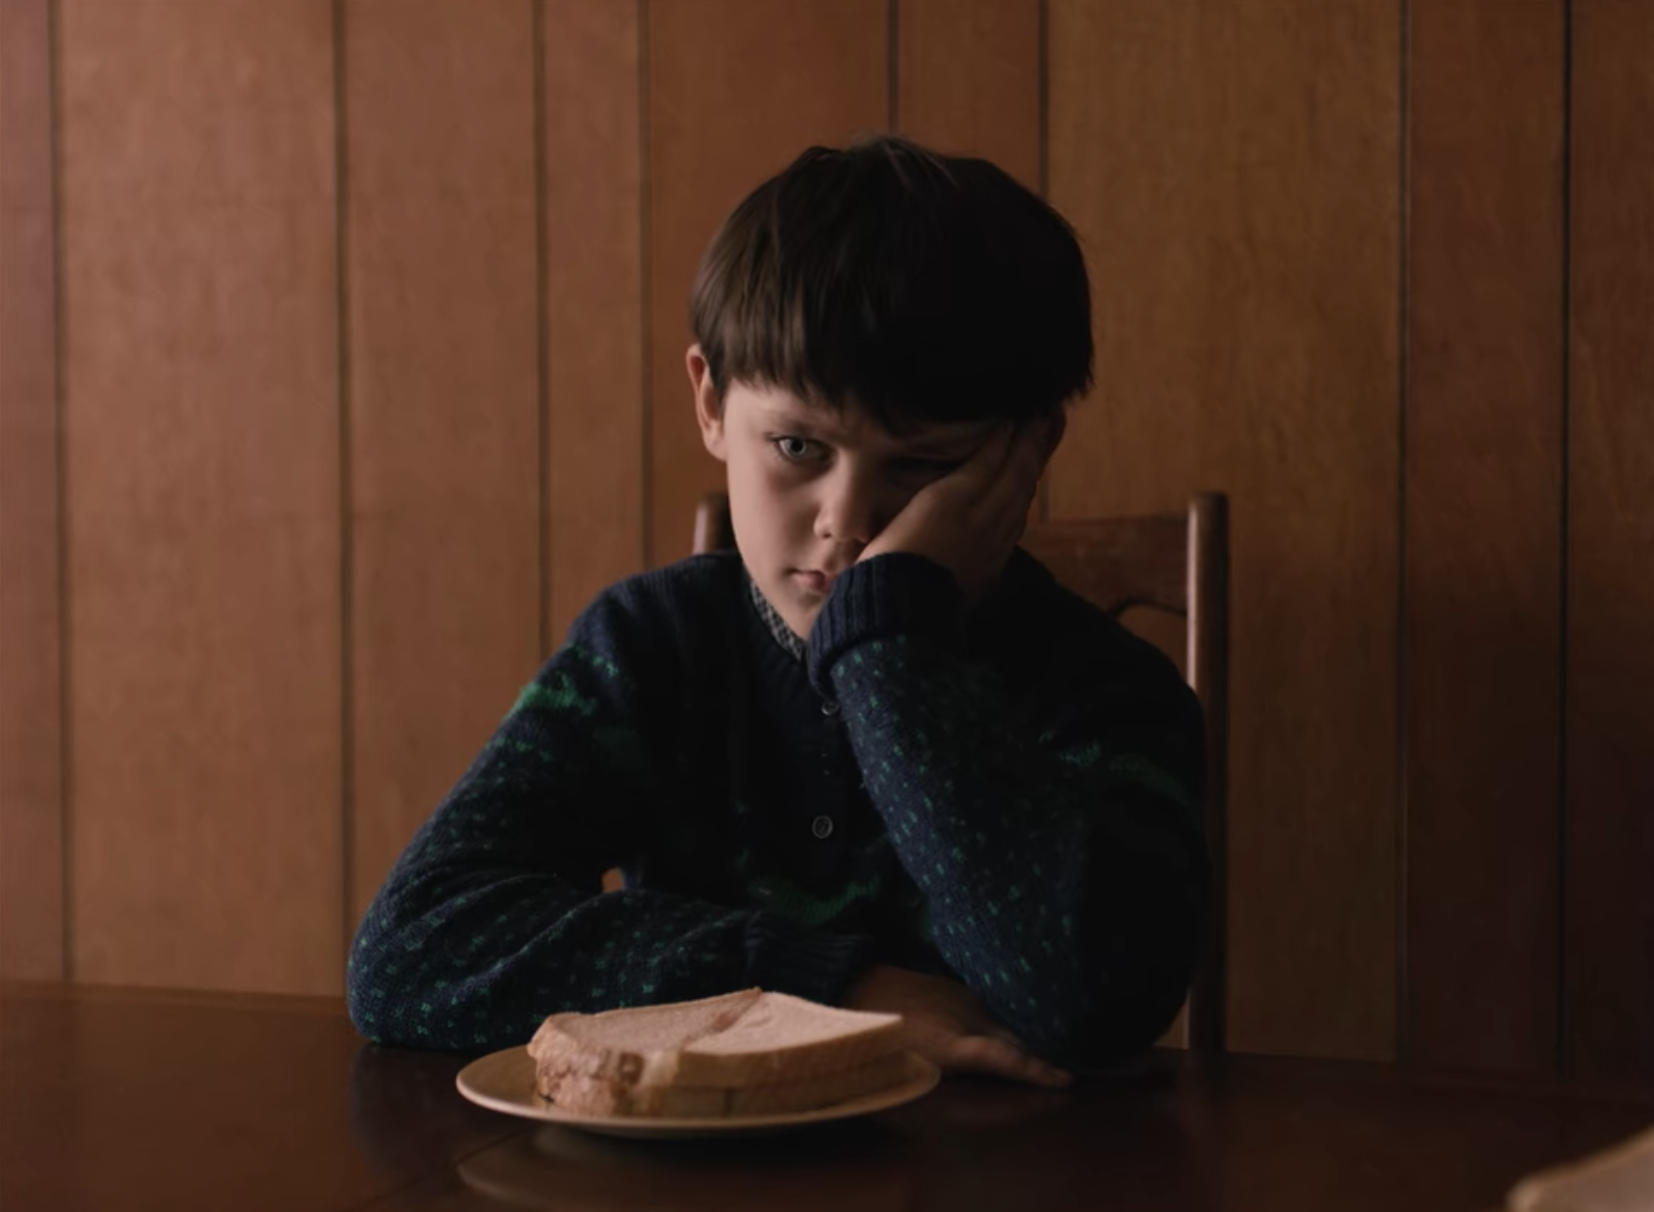 Jack sitting at a table in front of a sandwich with his head in his hand